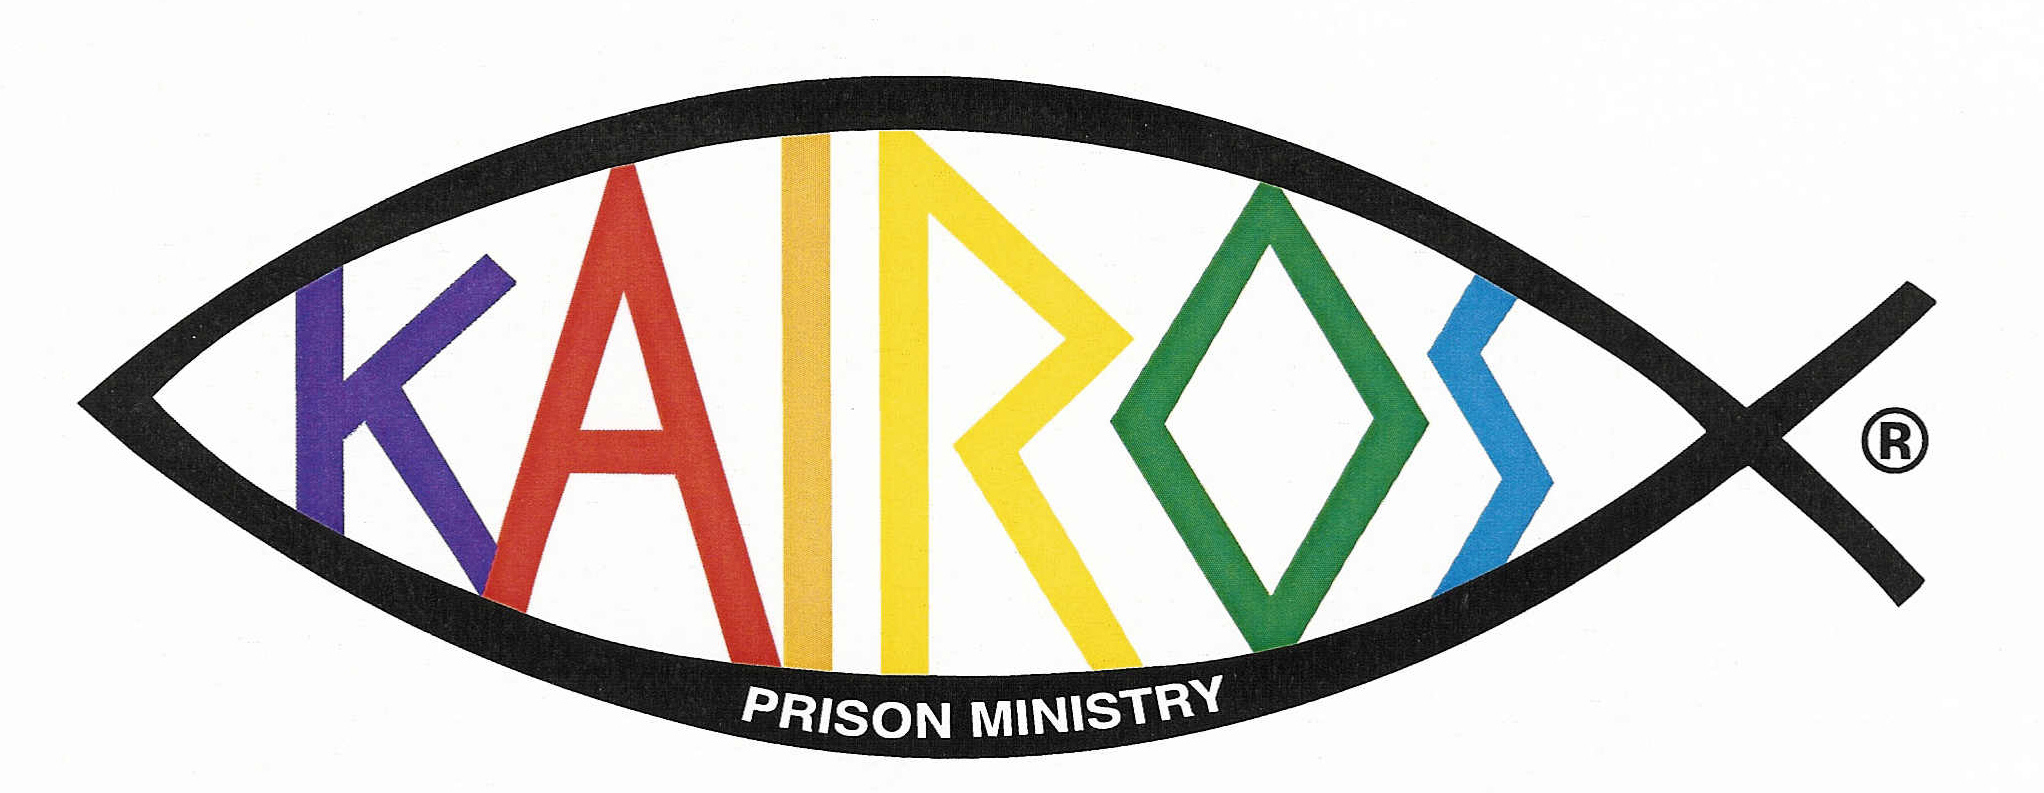 Prison Ministry Clipart  1